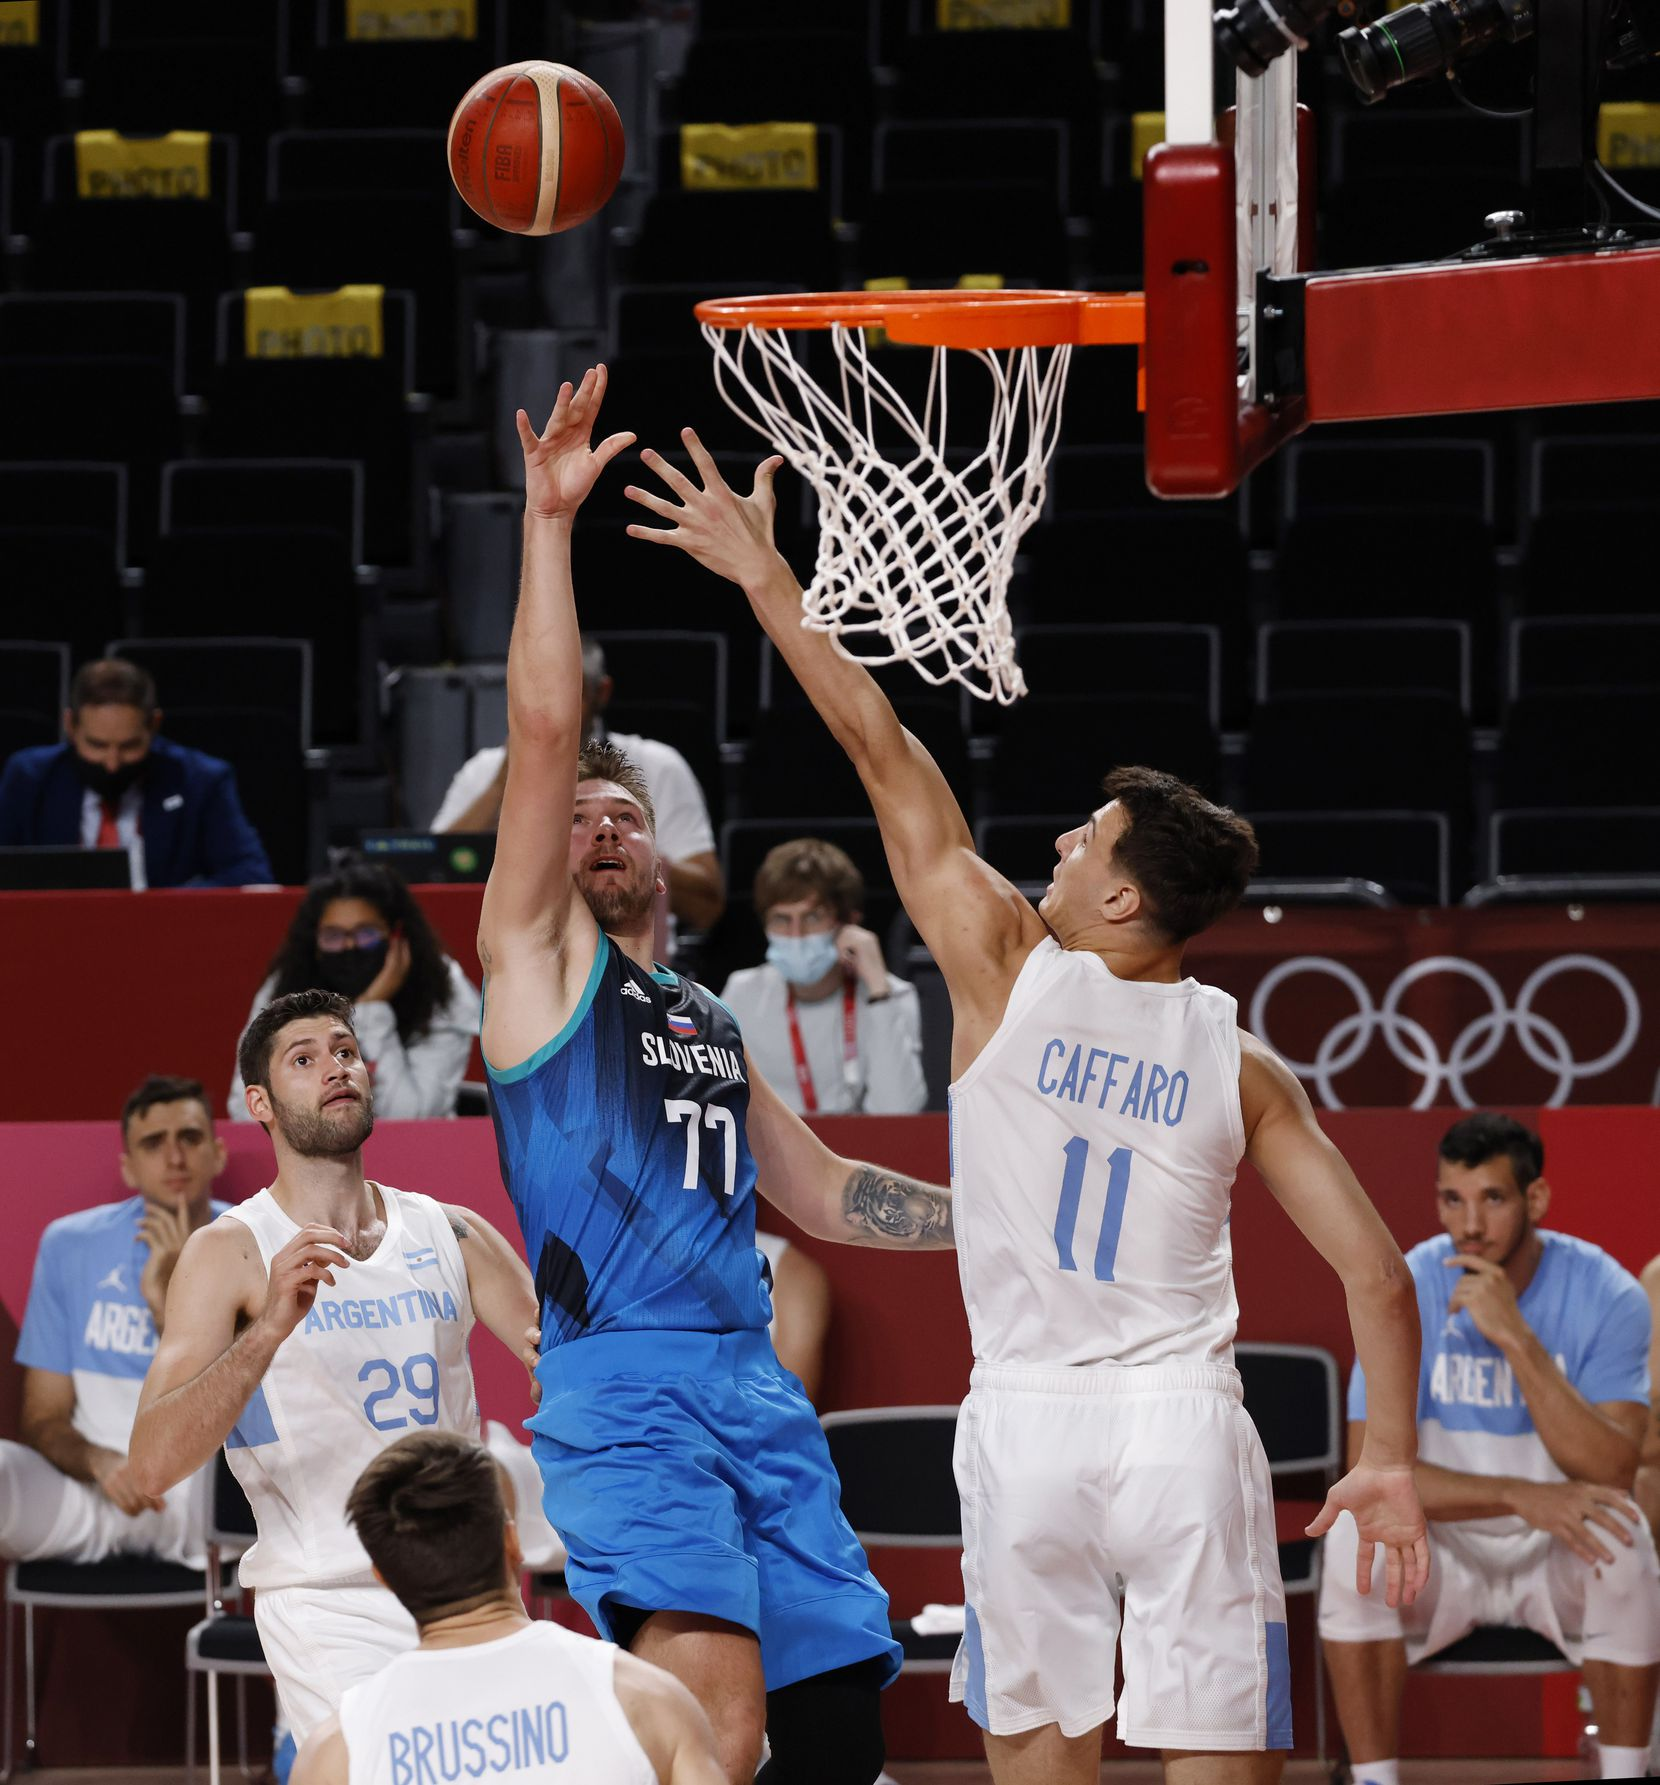 Slovenia's Luka Doncic (77) shoots over Argentina's Francisco Caffaro (11) in the second half of play during the postponed 2020 Tokyo Olympics at Saitama Super Arena on Monday, July 26, 2021, in Saitama, Japan. Slovenia defeated Argentina 118-100. (Vernon Bryant/The Dallas Morning News)